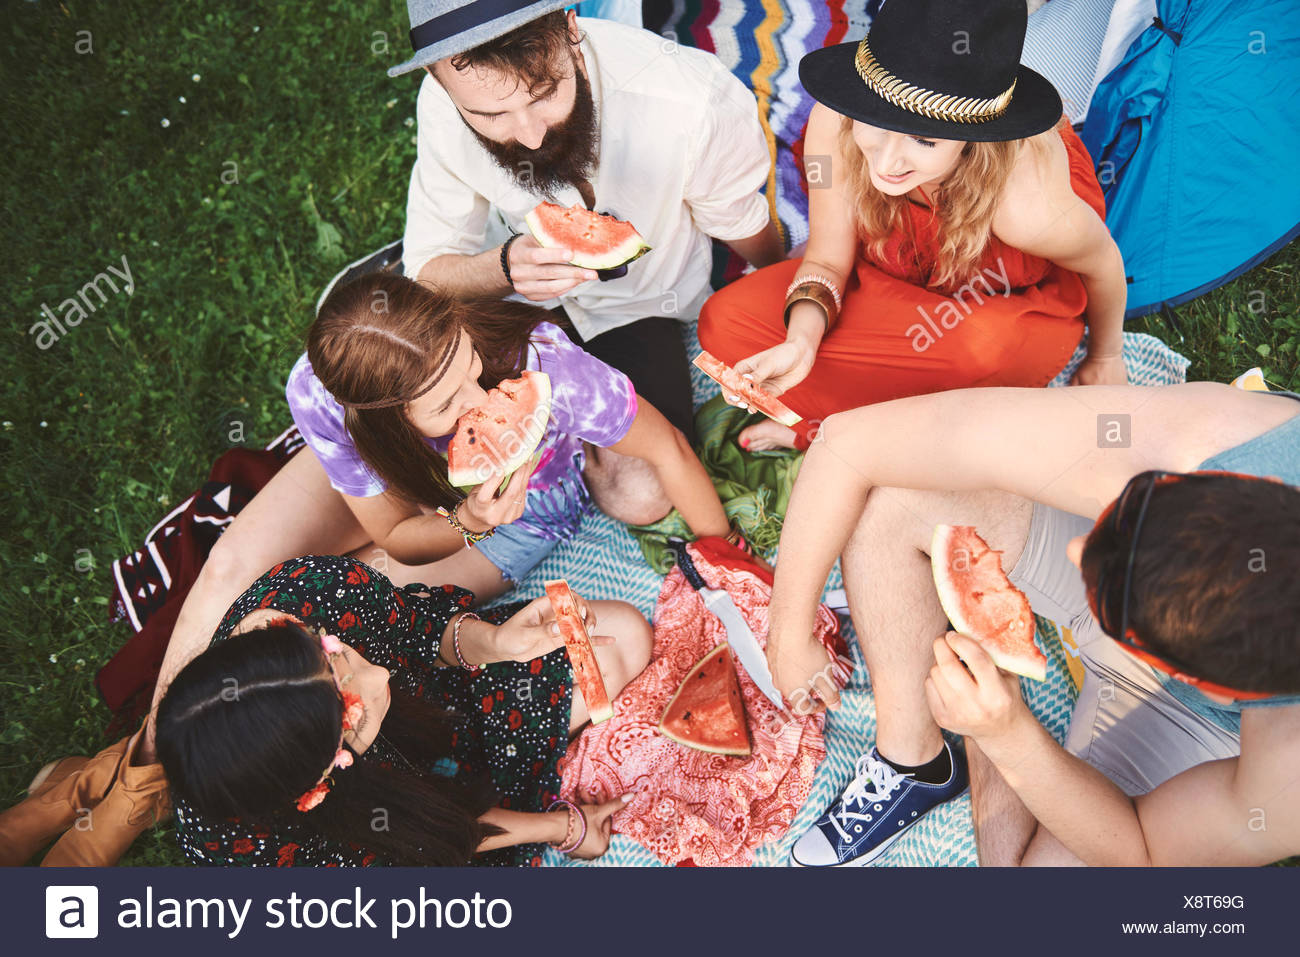 Overhead view of young boho adult friends eating melon slices at festival - Stock Image